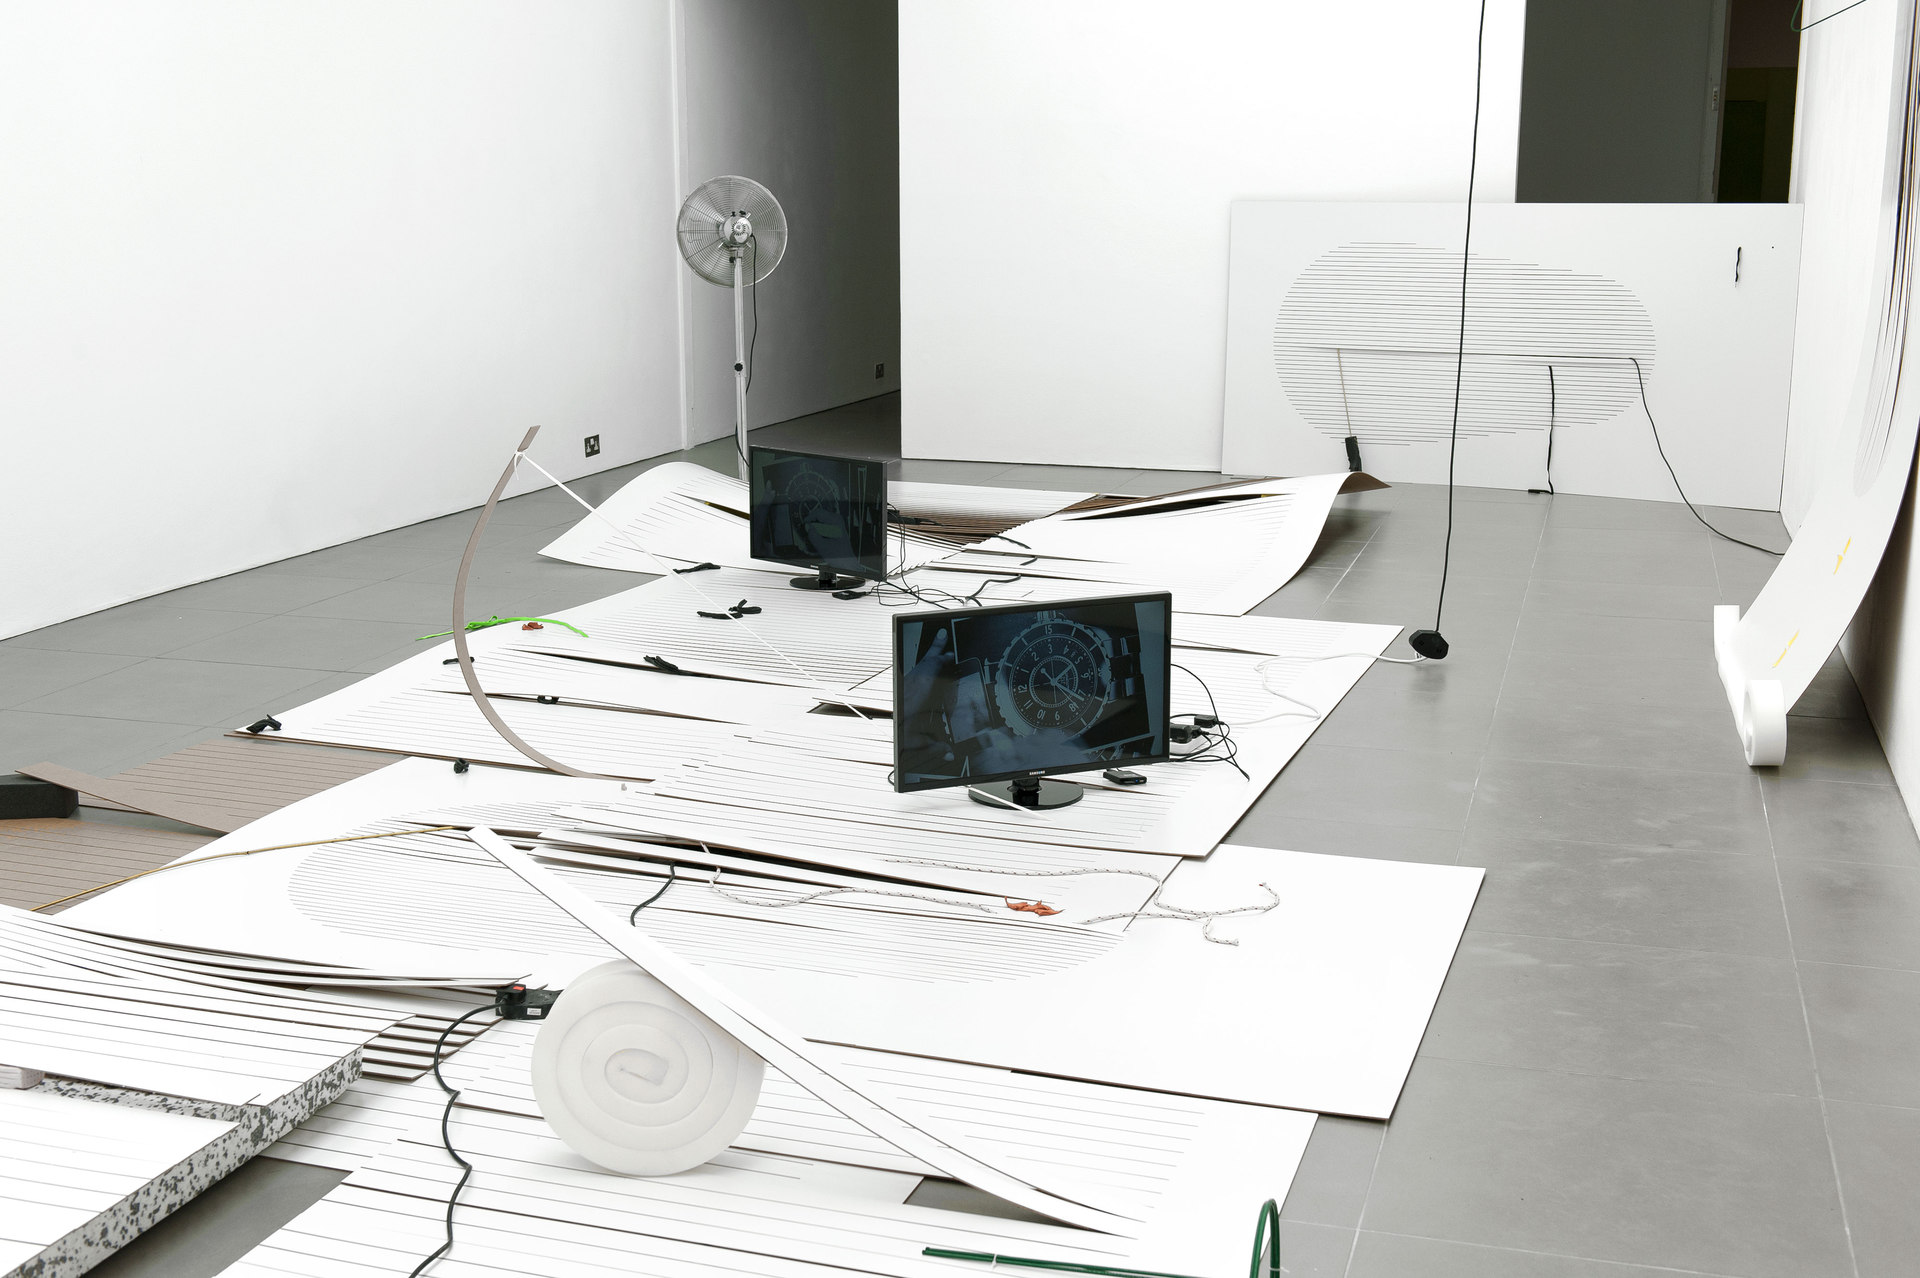 Beatriz Olabarrieta, Shifty-Show, mixed media installation, 2014, Cell Project Space